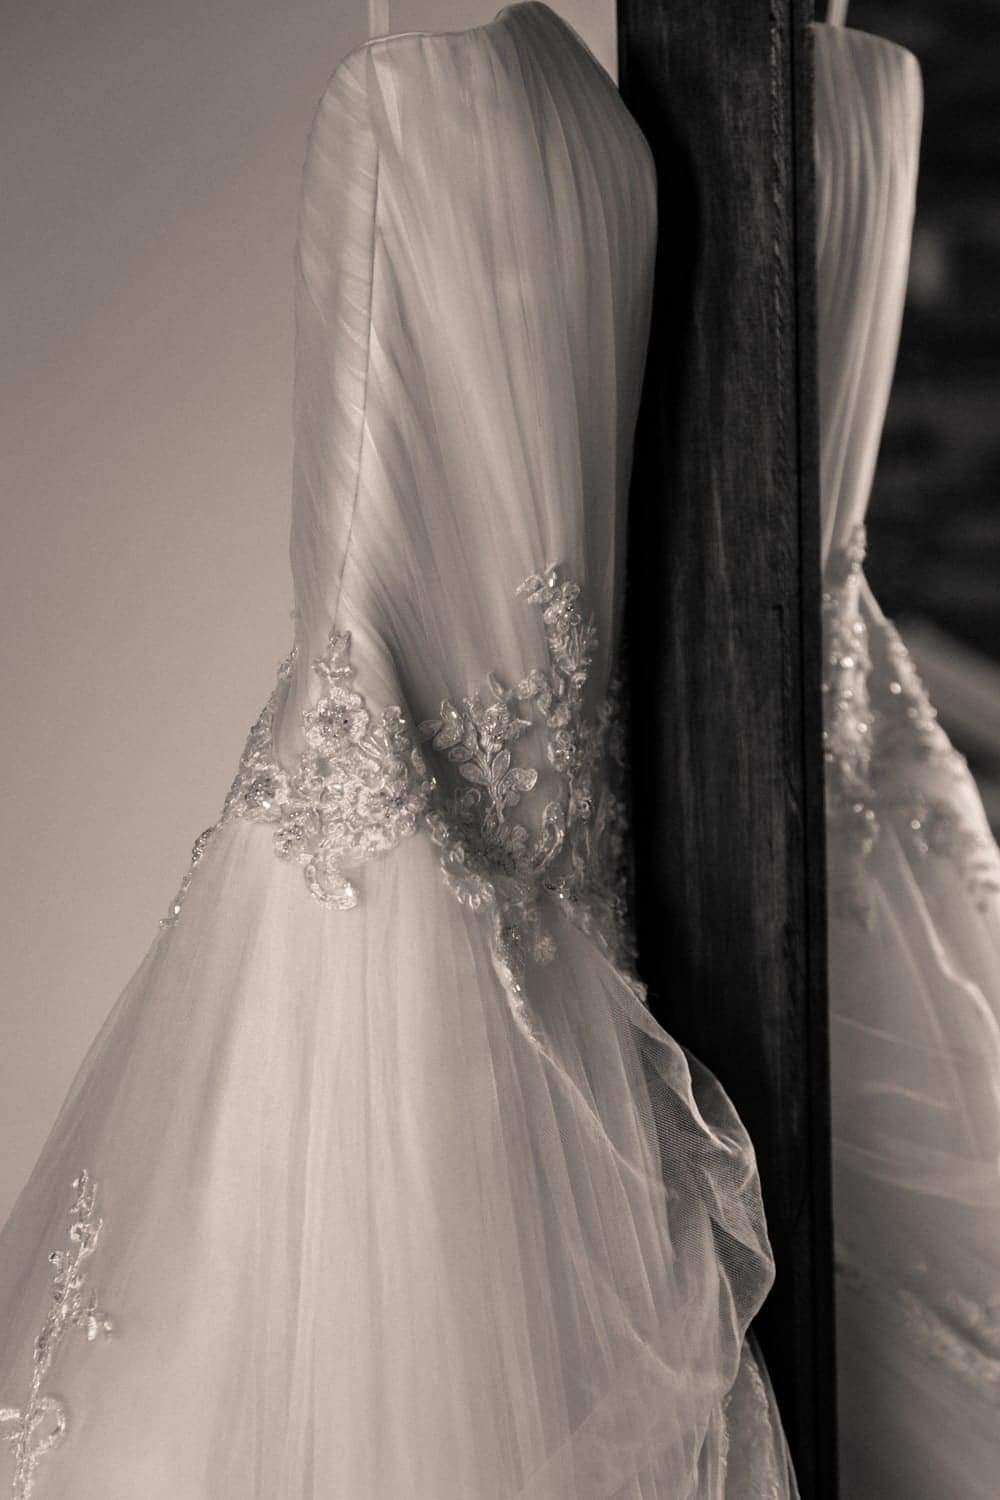 Black and white photo of wedding dress in bridal suite.